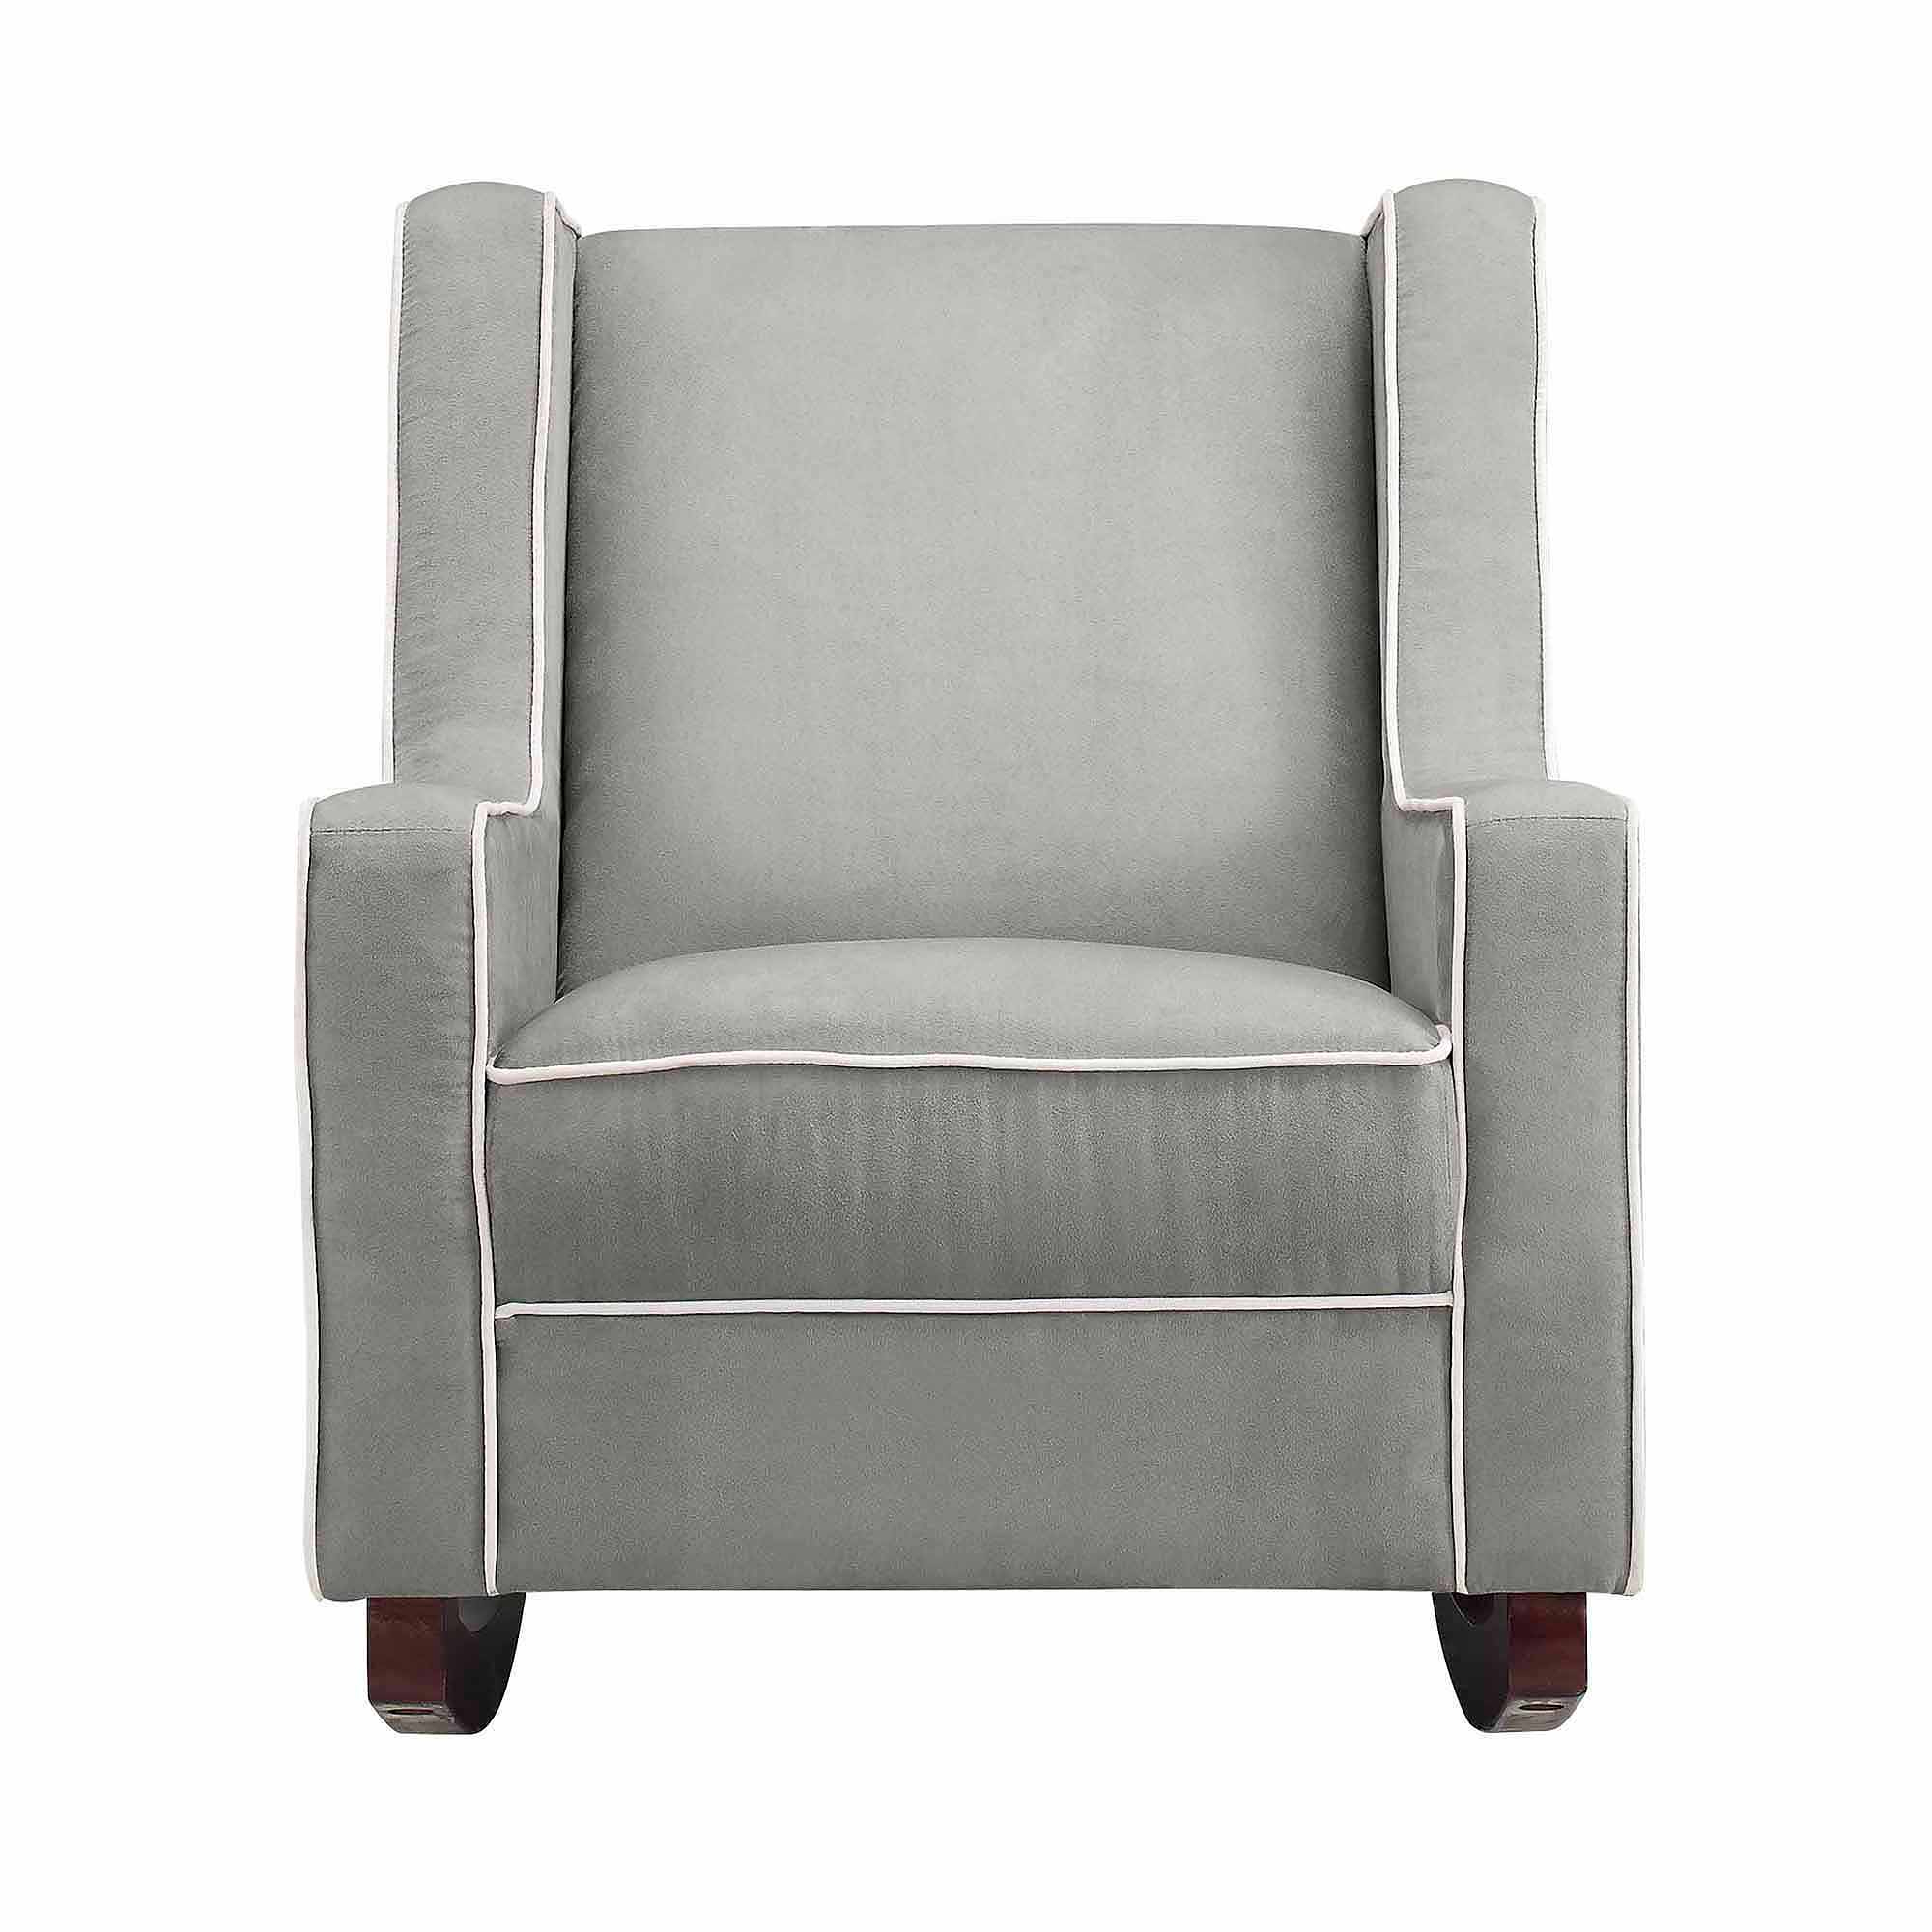 Abbey Swivel Glider Recliners Intended For Fashionable Furniture: Magnificent Walmart Glider Rocker For Fabulous Home (View 3 of 20)